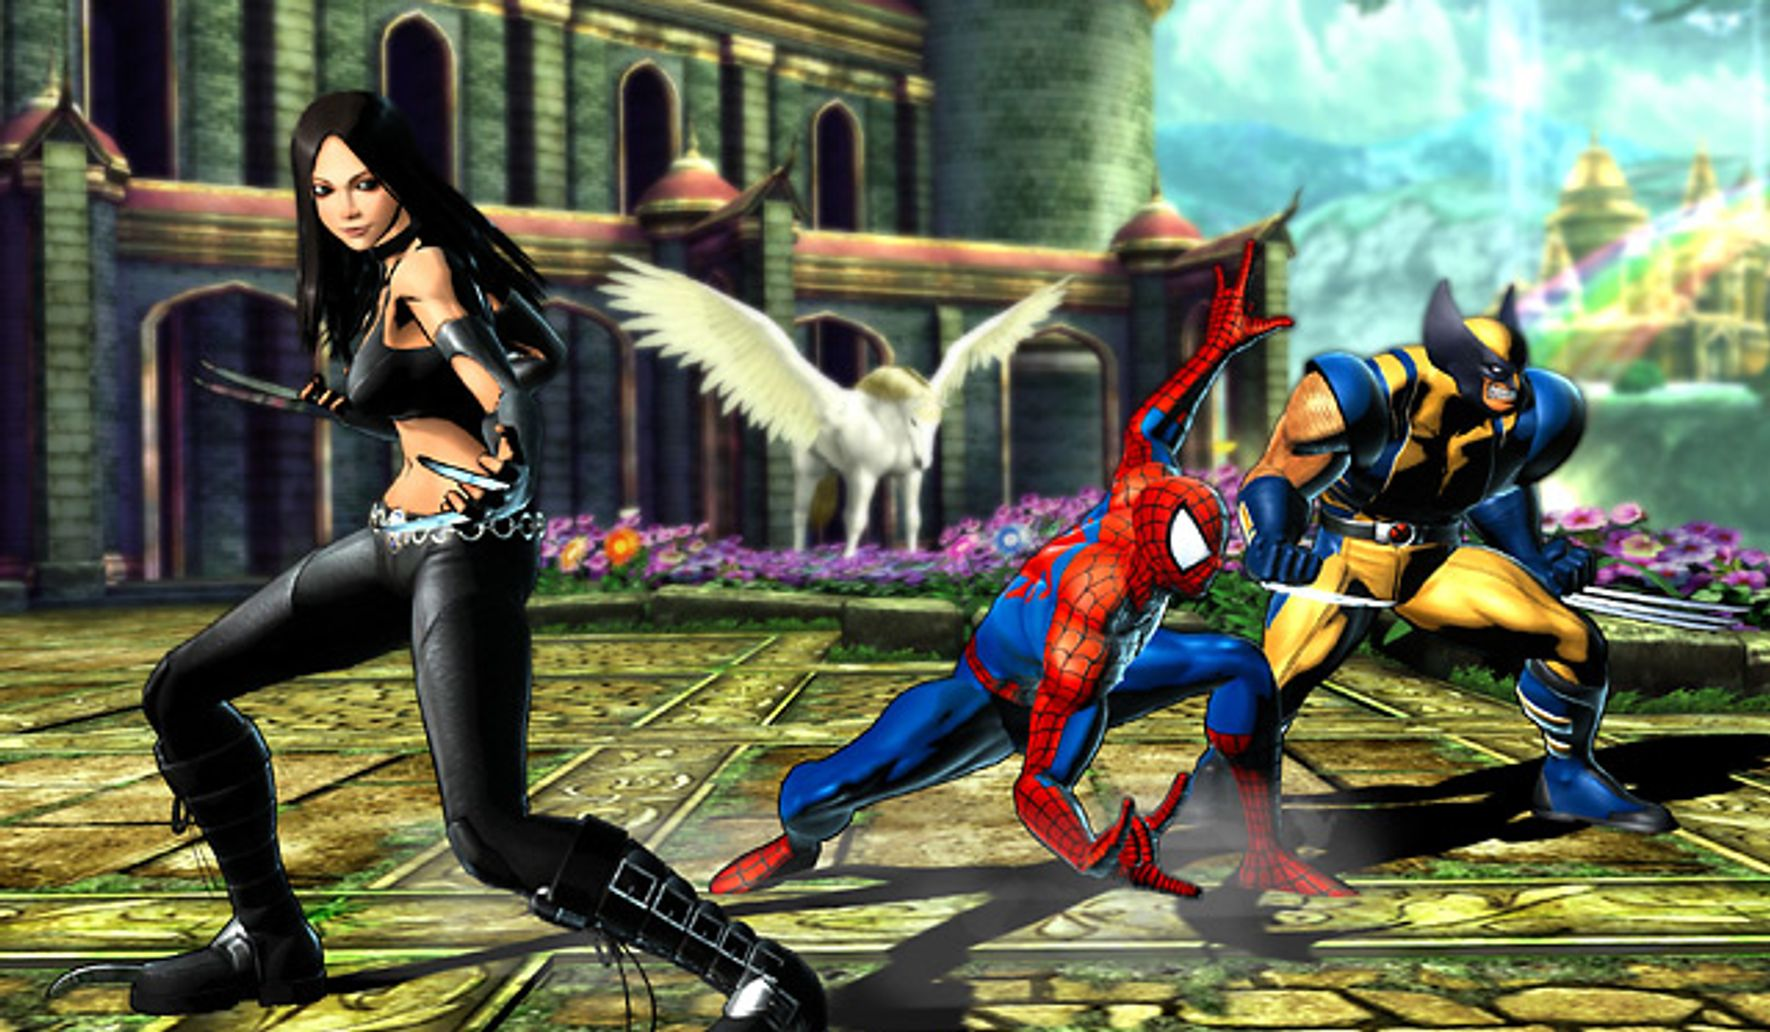 Zadzooks: Marvel vs  Capcom 3: Fate of Two Worlds, Special Edition